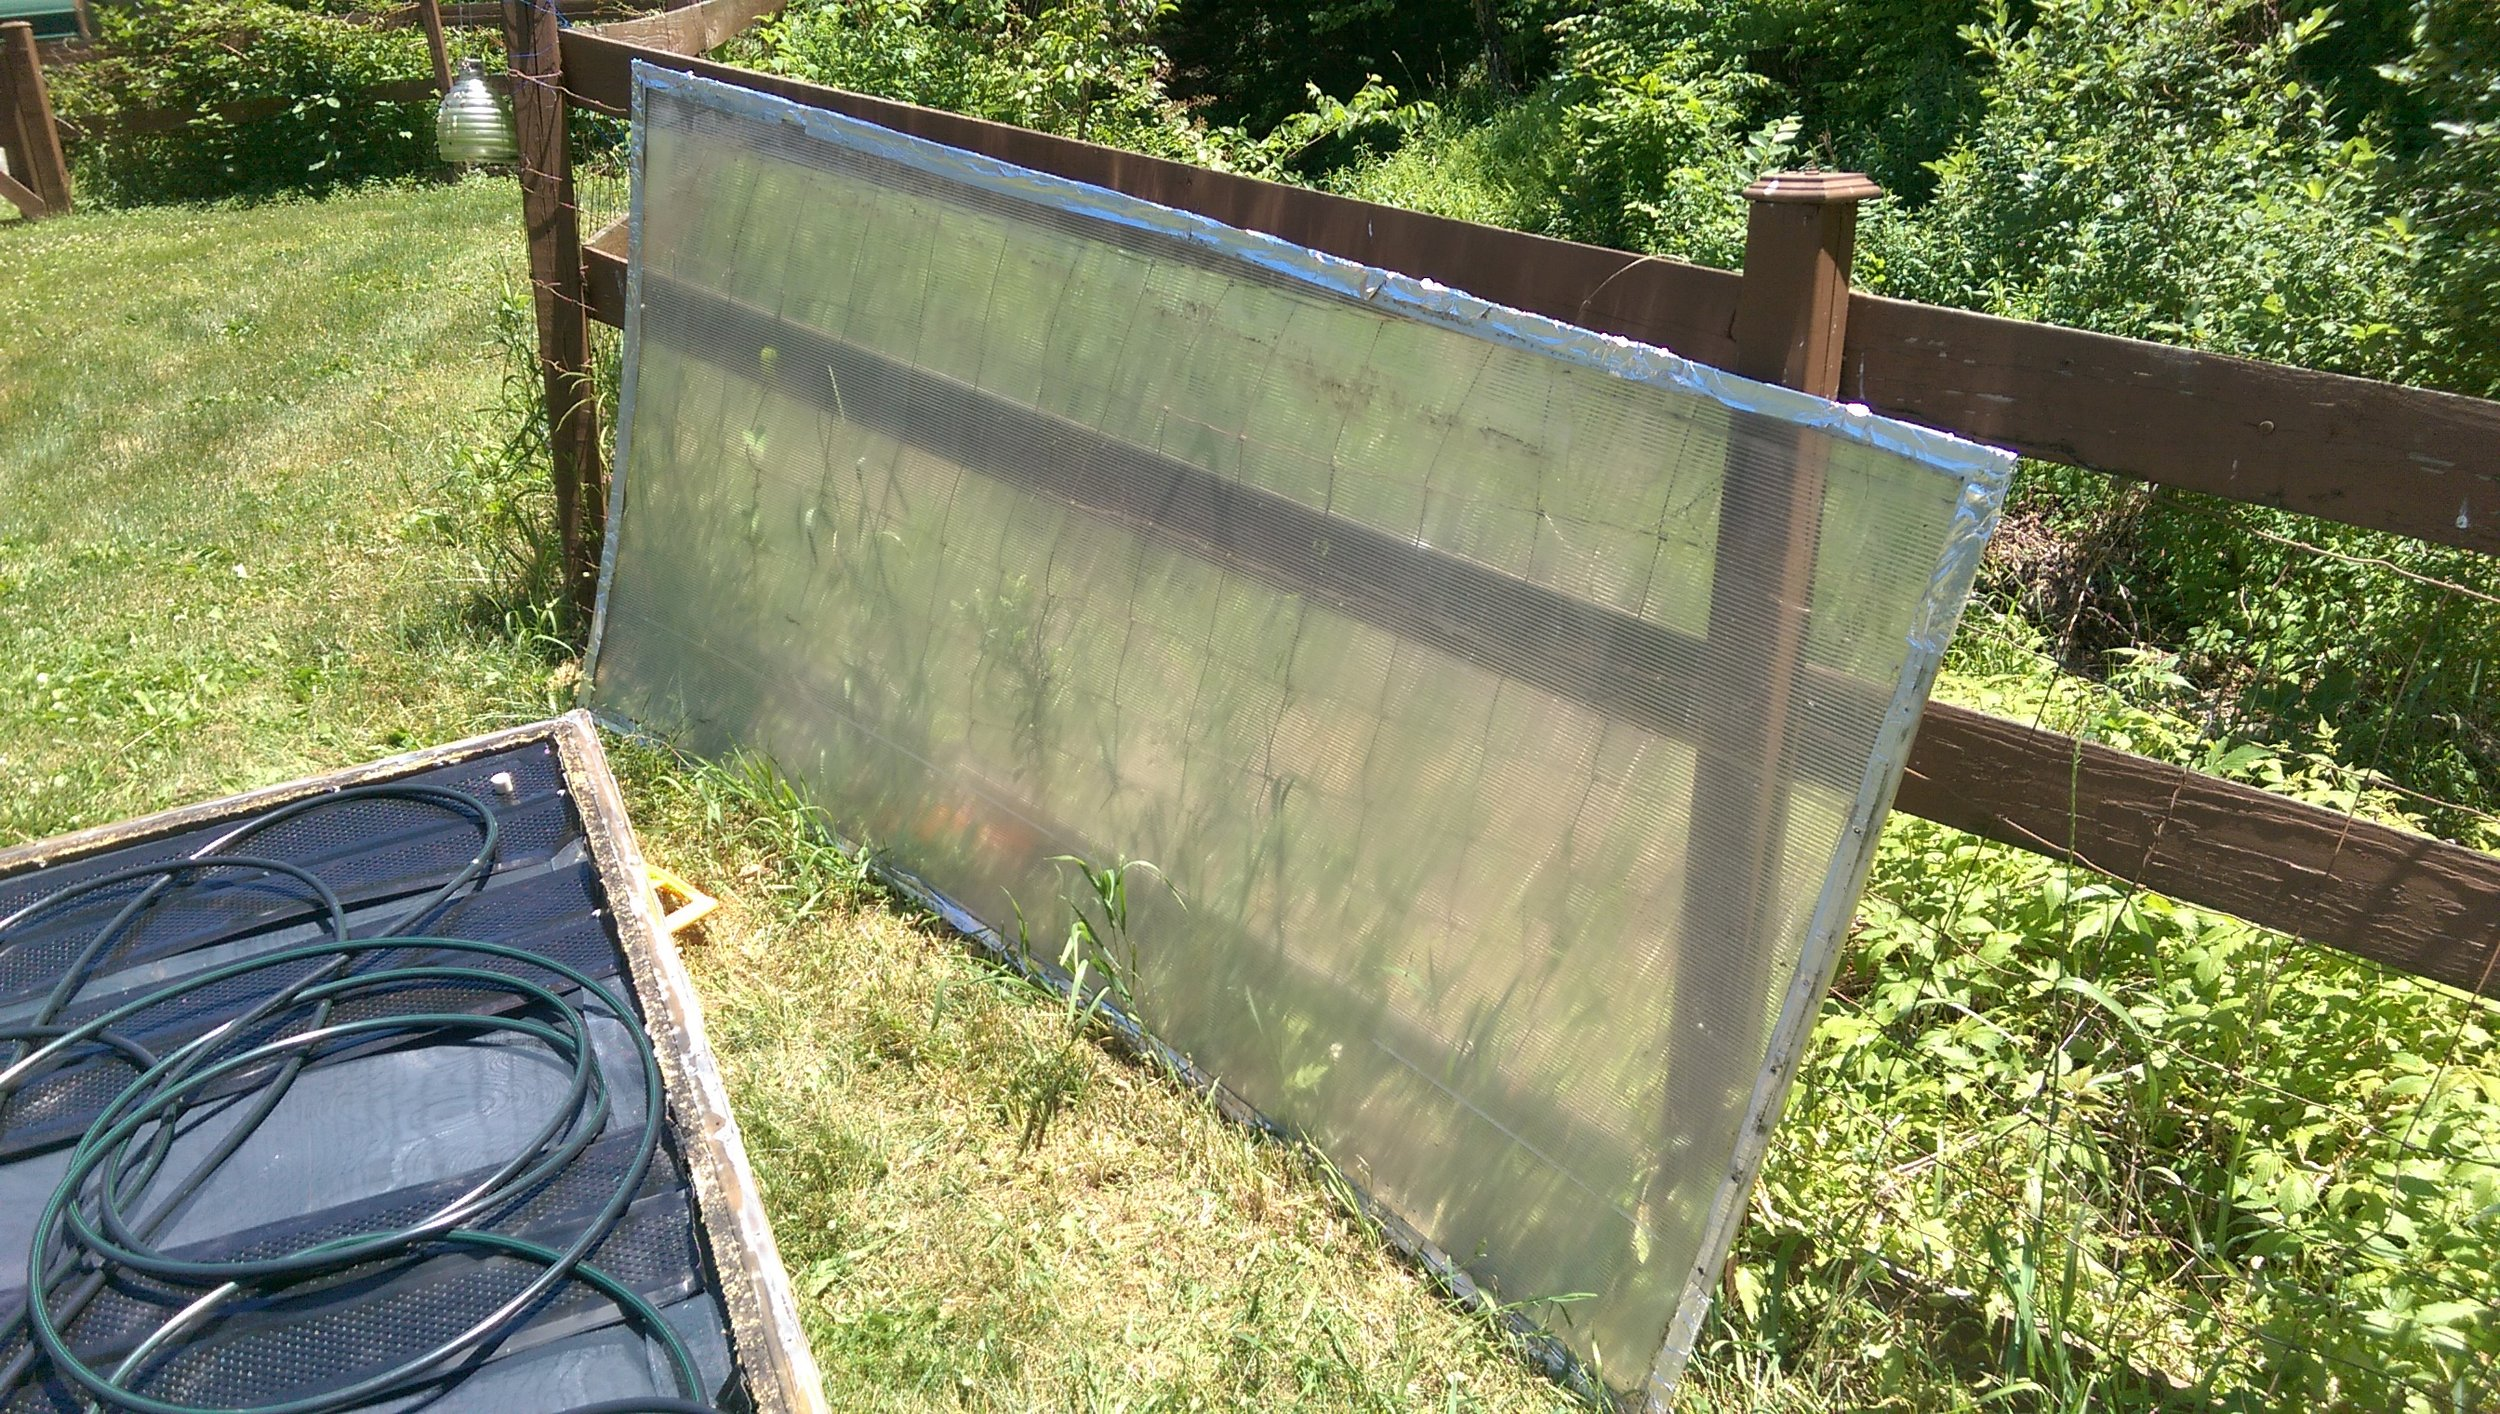 Green house solar panel double wall 4x8 with aluminum tape around the edges.